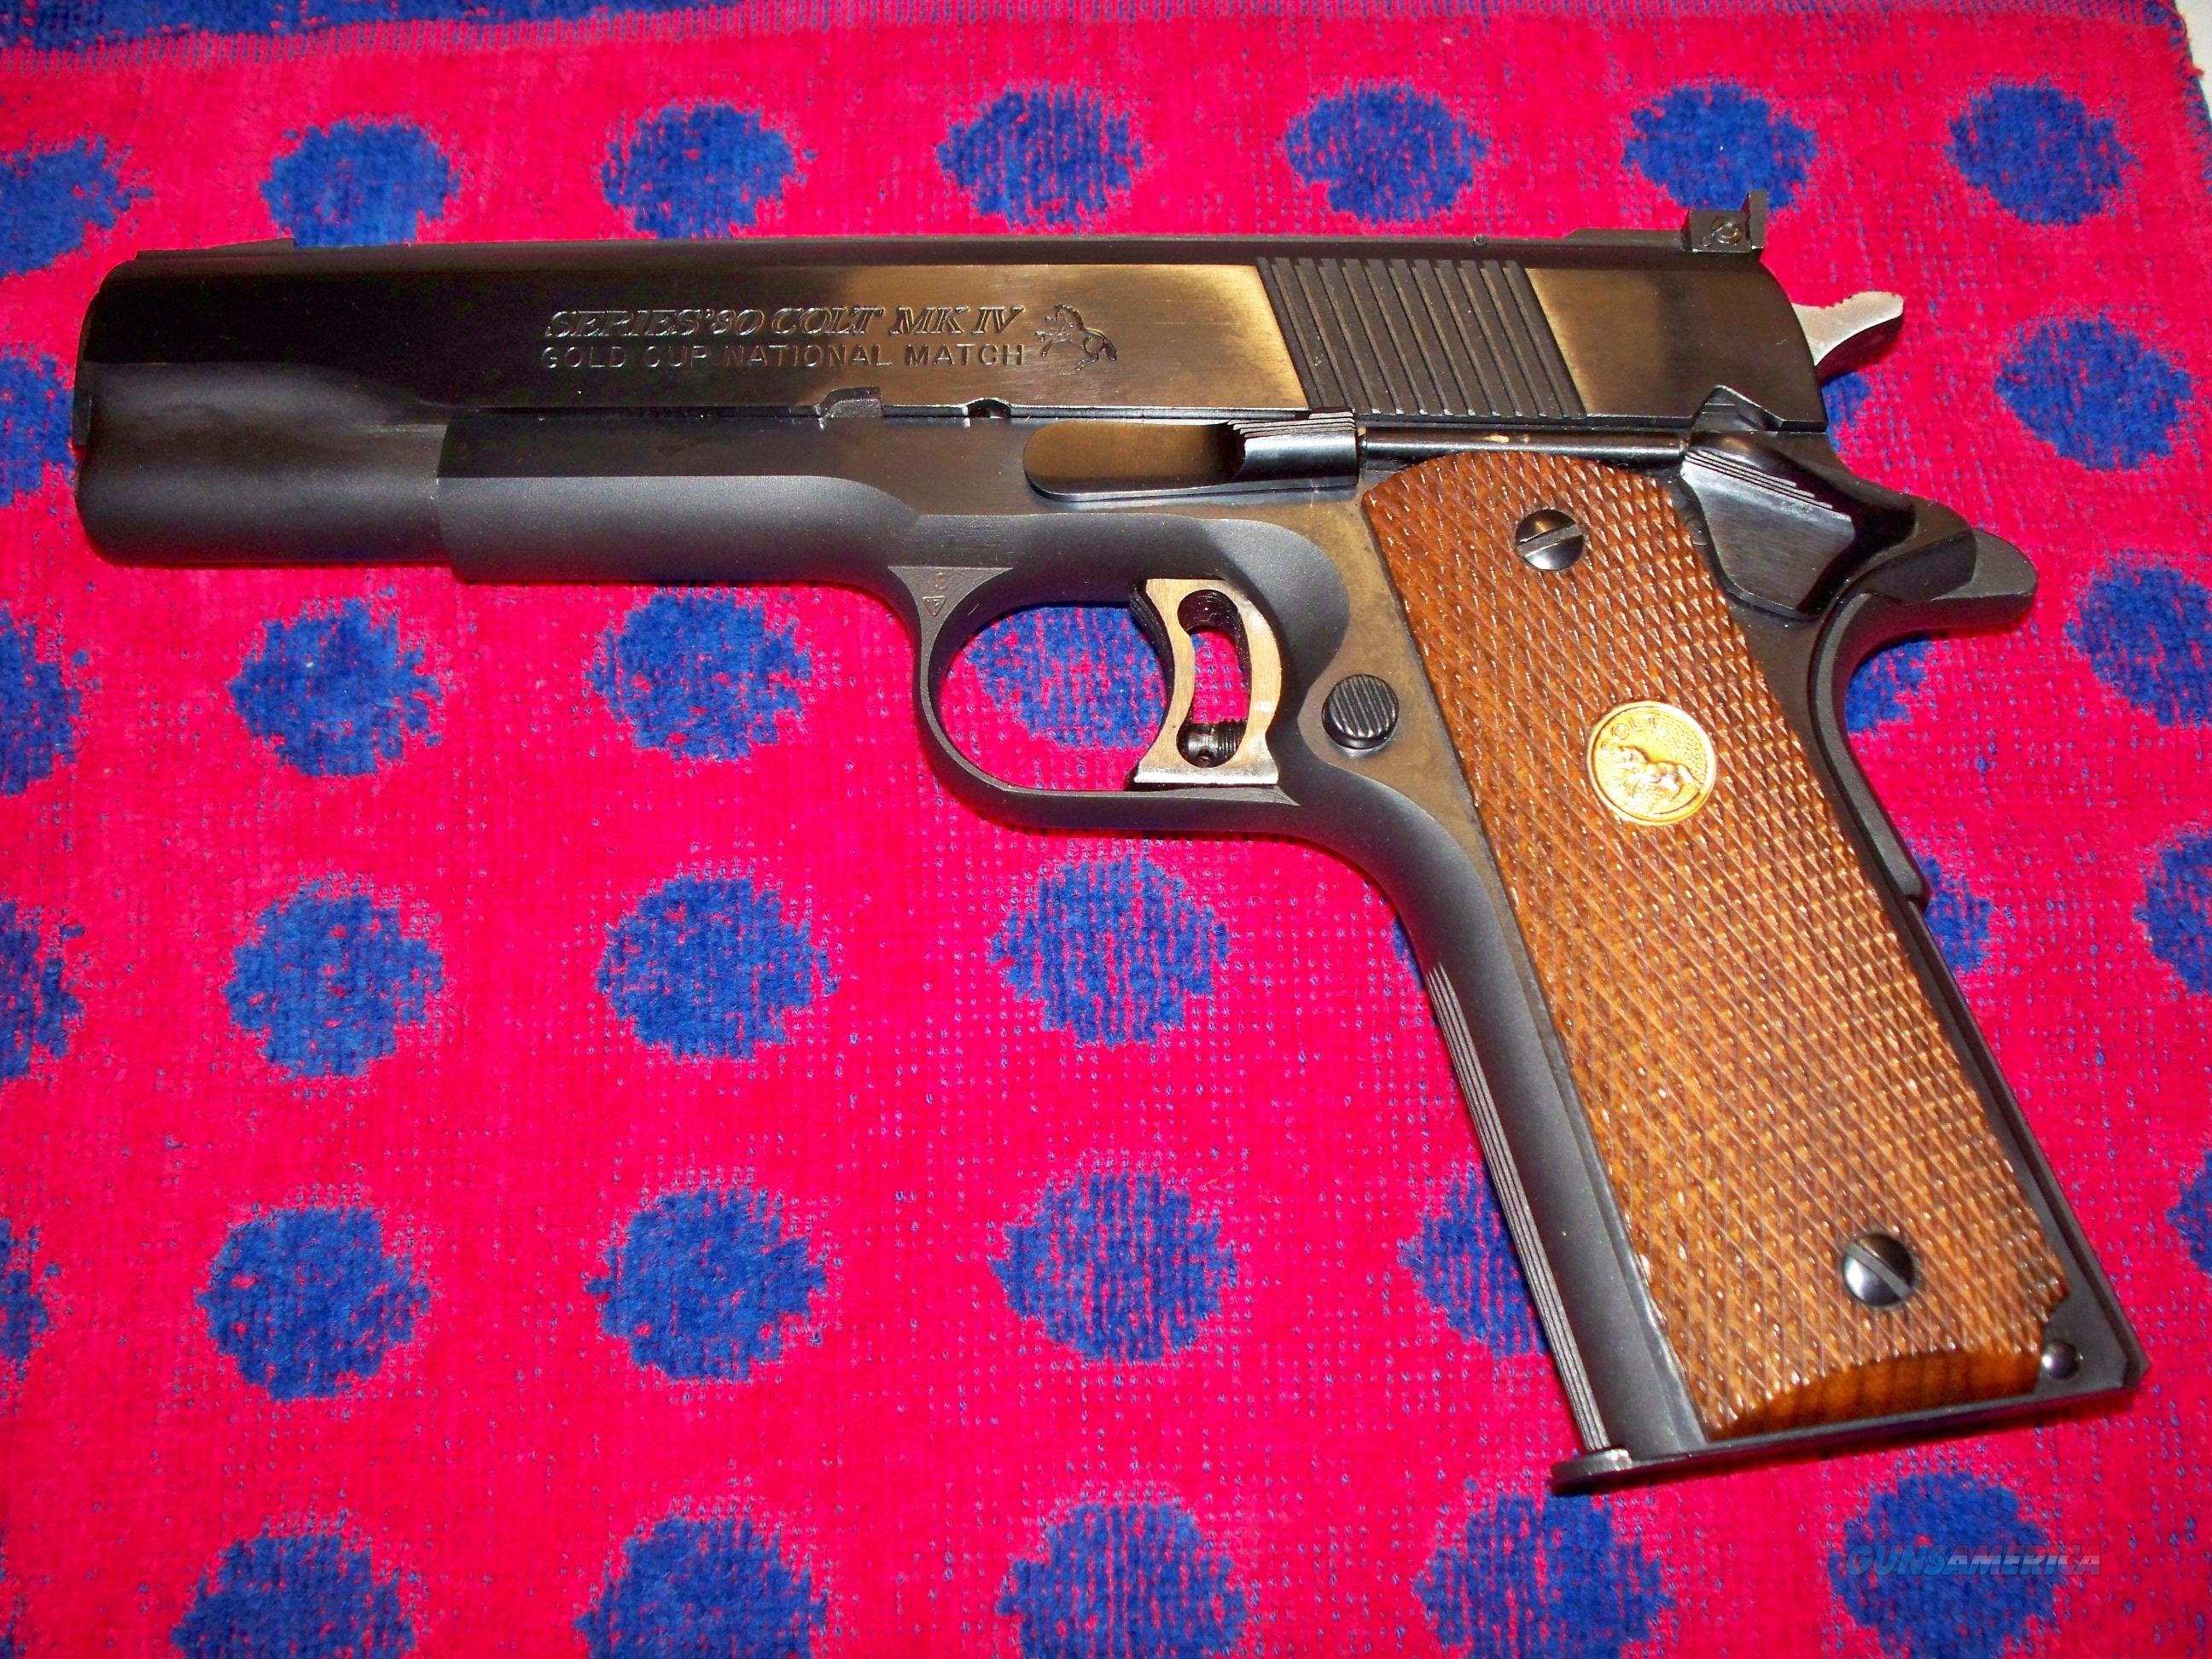 SERIES'80 COLT MARK IV GOLD CUP NATIONAL MATCH  Guns > Pistols > Colt Automatic Pistols (1911 & Var)